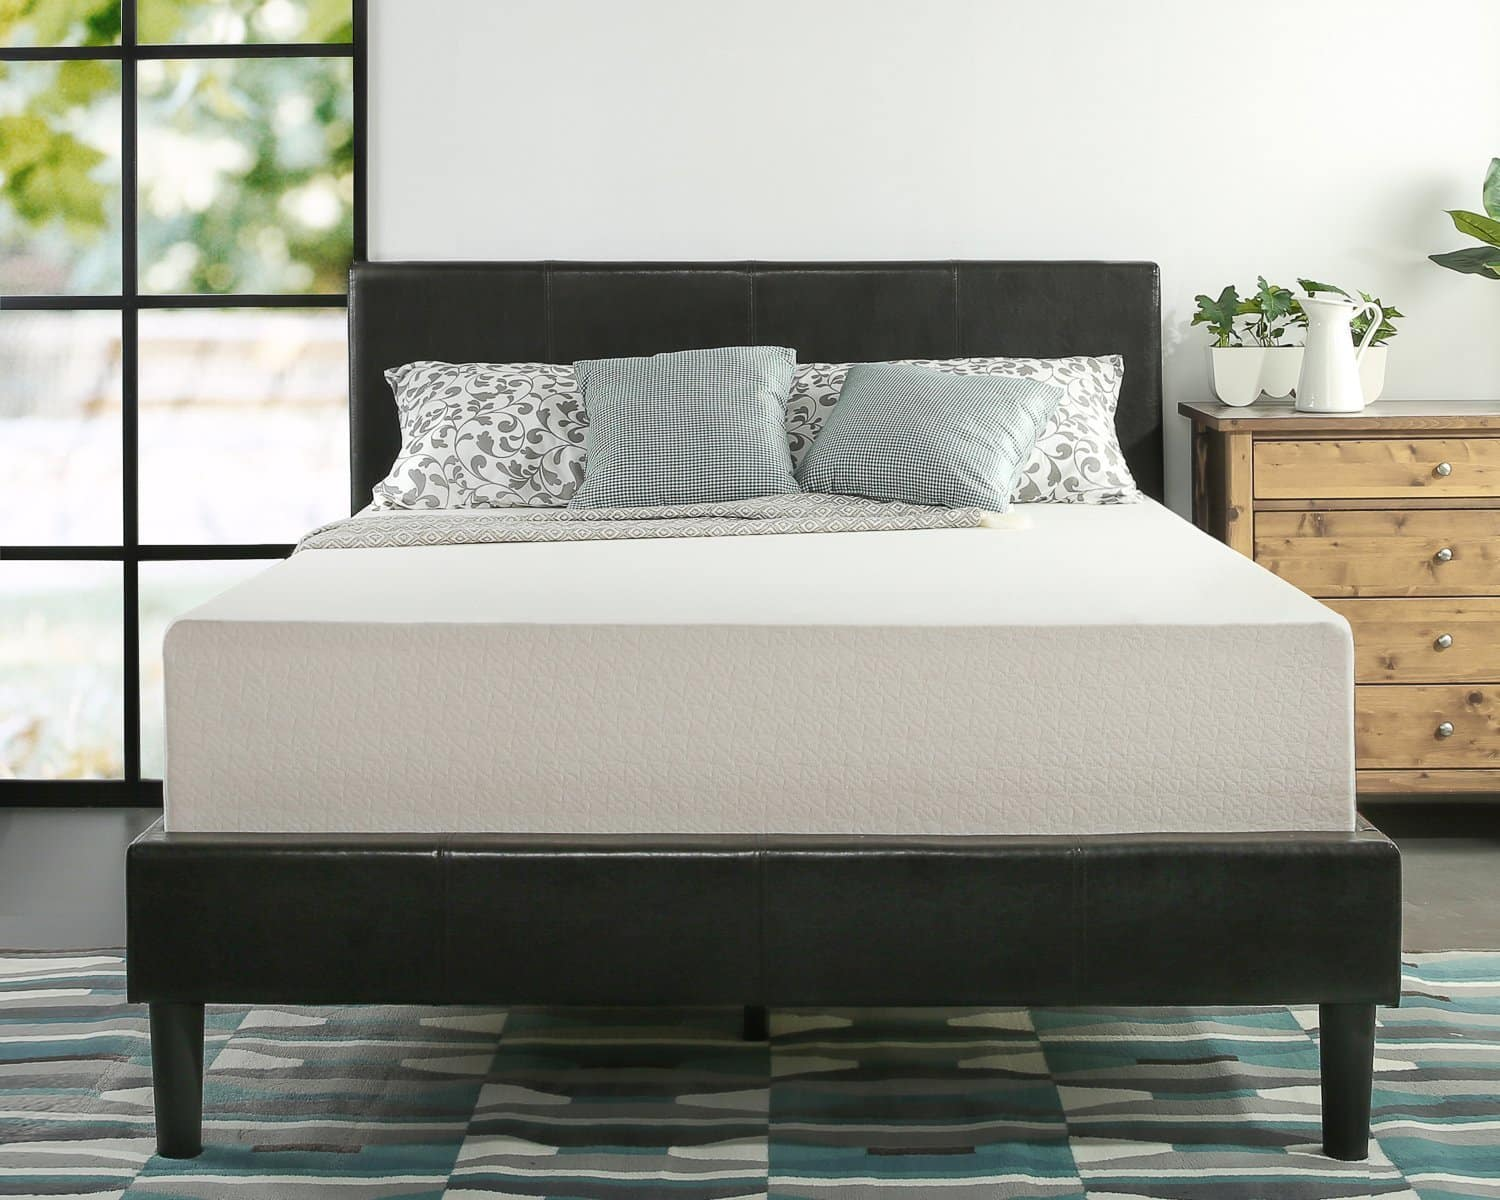 "Lowest ever prices on these Zinus memory foam 12"" green tea mattresses!"